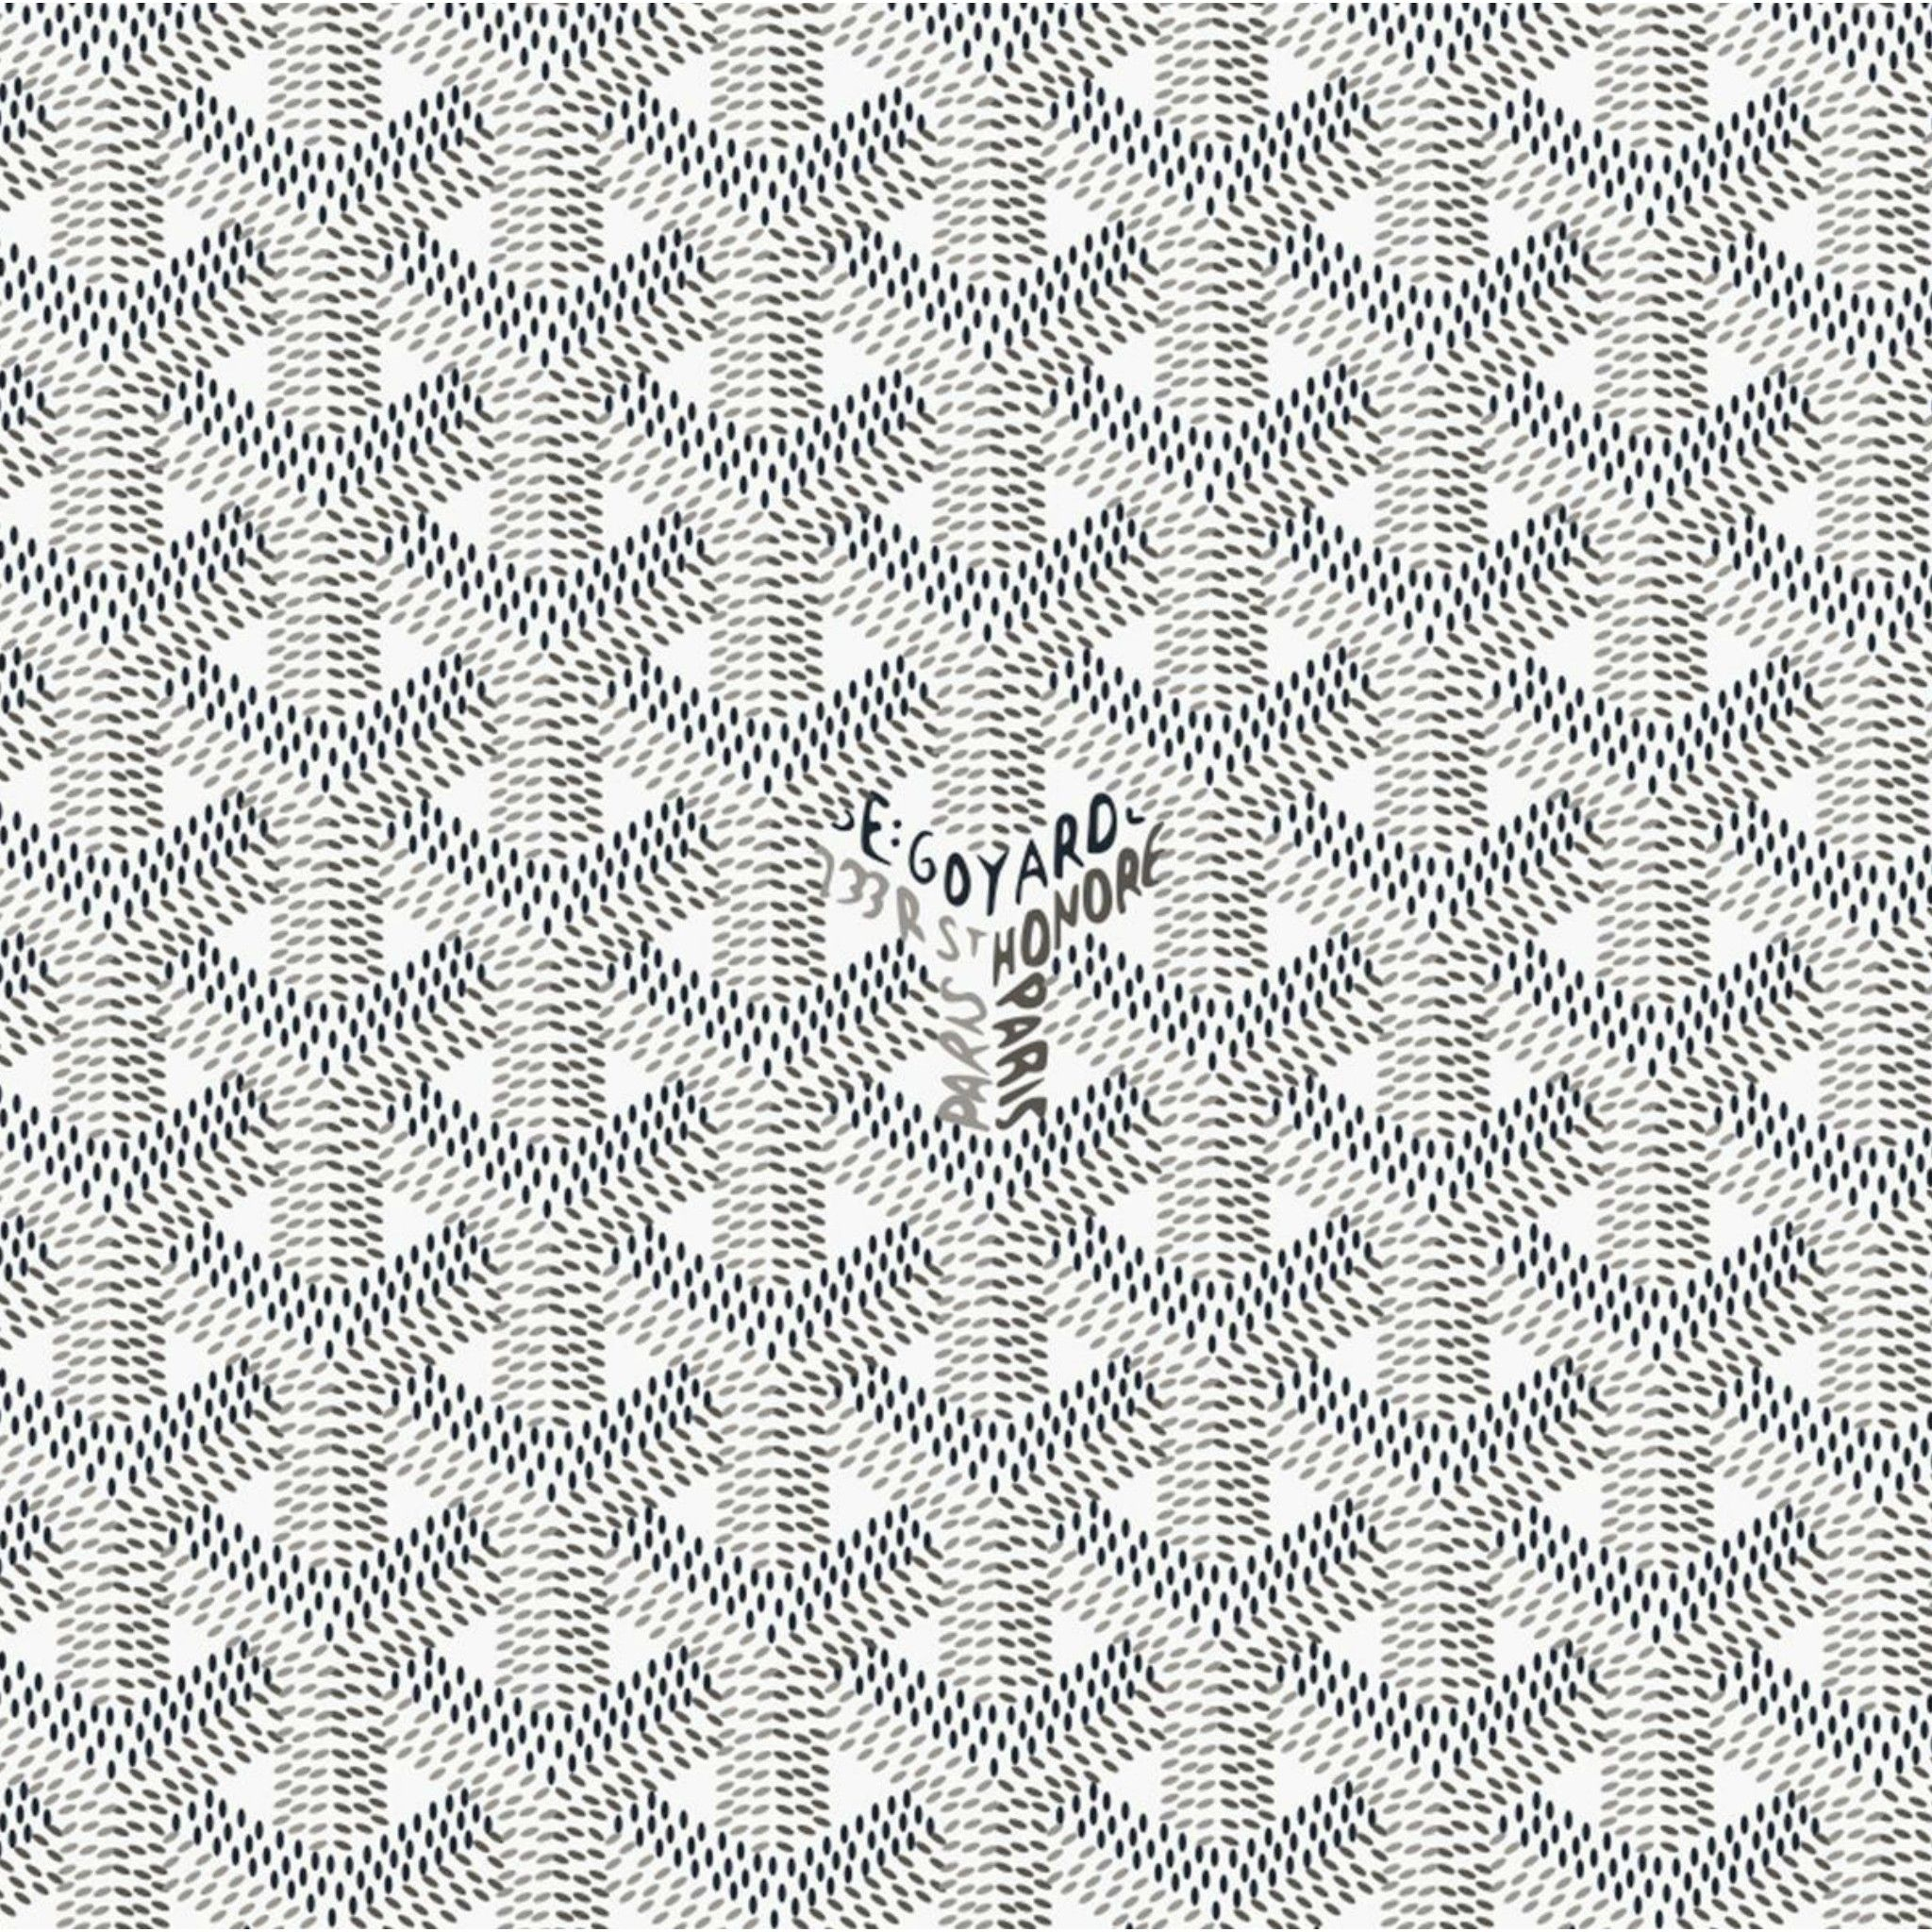 Goyard Design Tap To See More Goyard Wallpapers Mobile9 Hypebeast Wallpaper White Wallpaper For Iphone Goyard Print